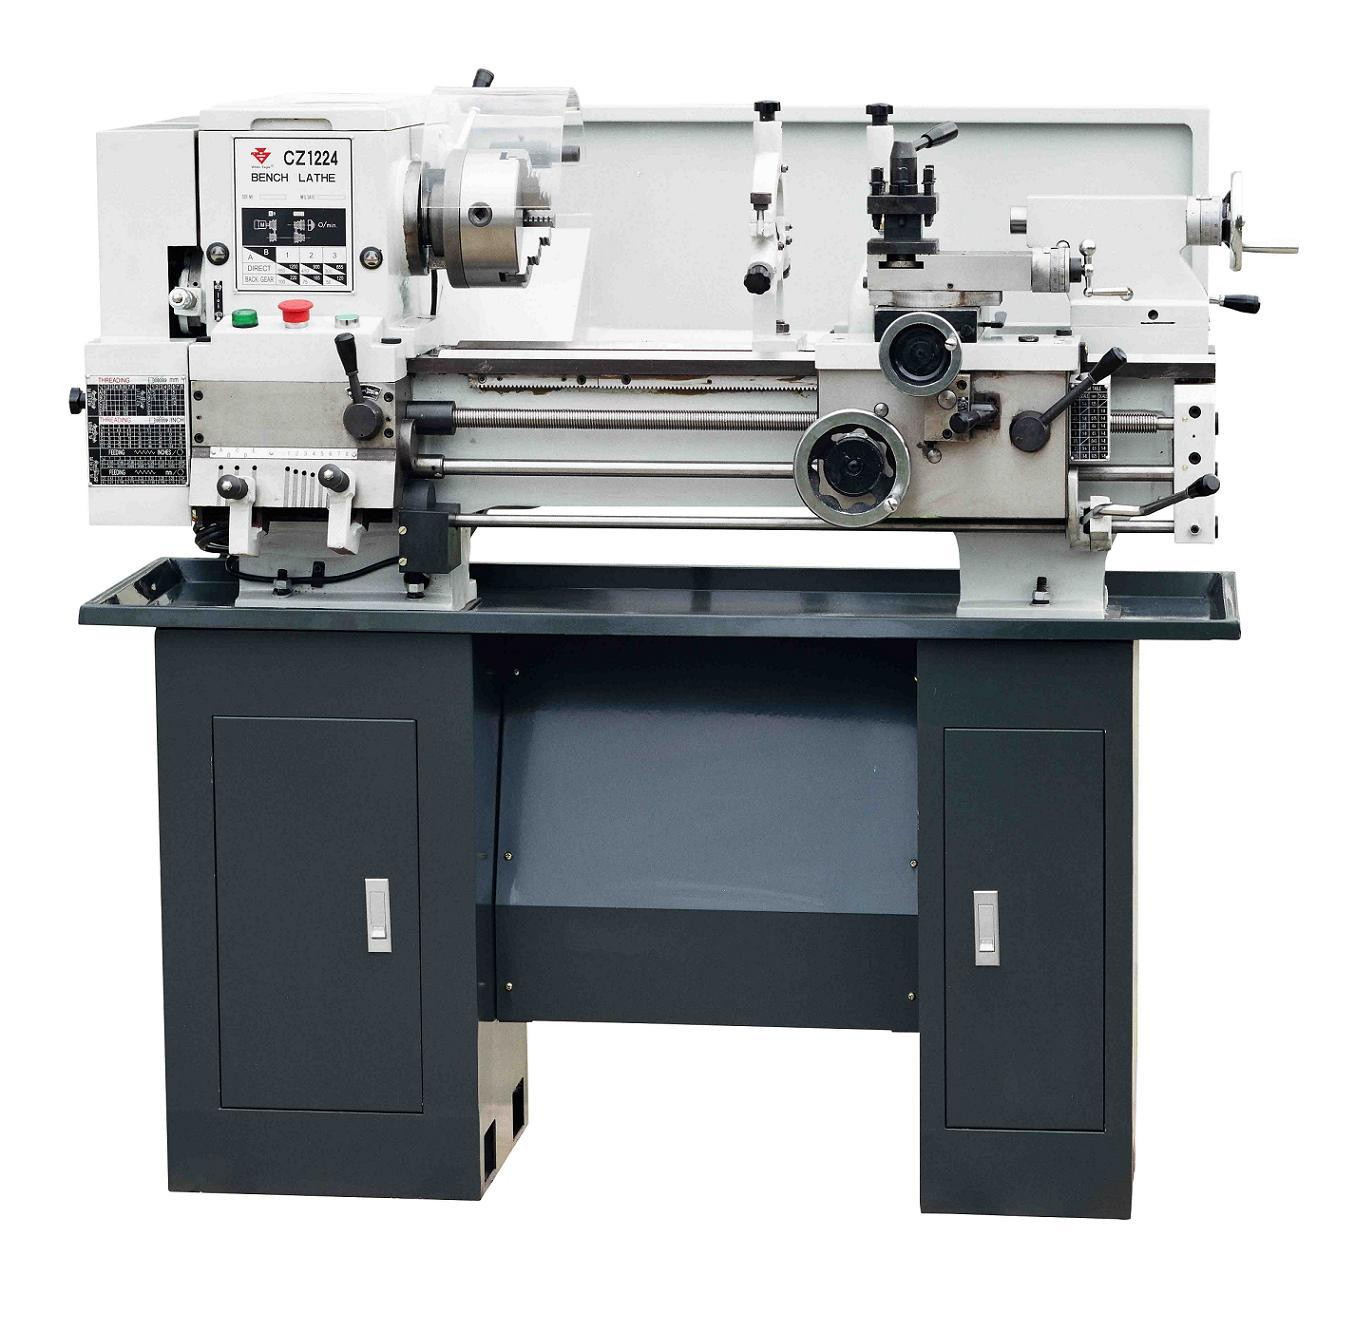 China Bench Lathe Cz1224 Cz1237 Photos Pictures Made In